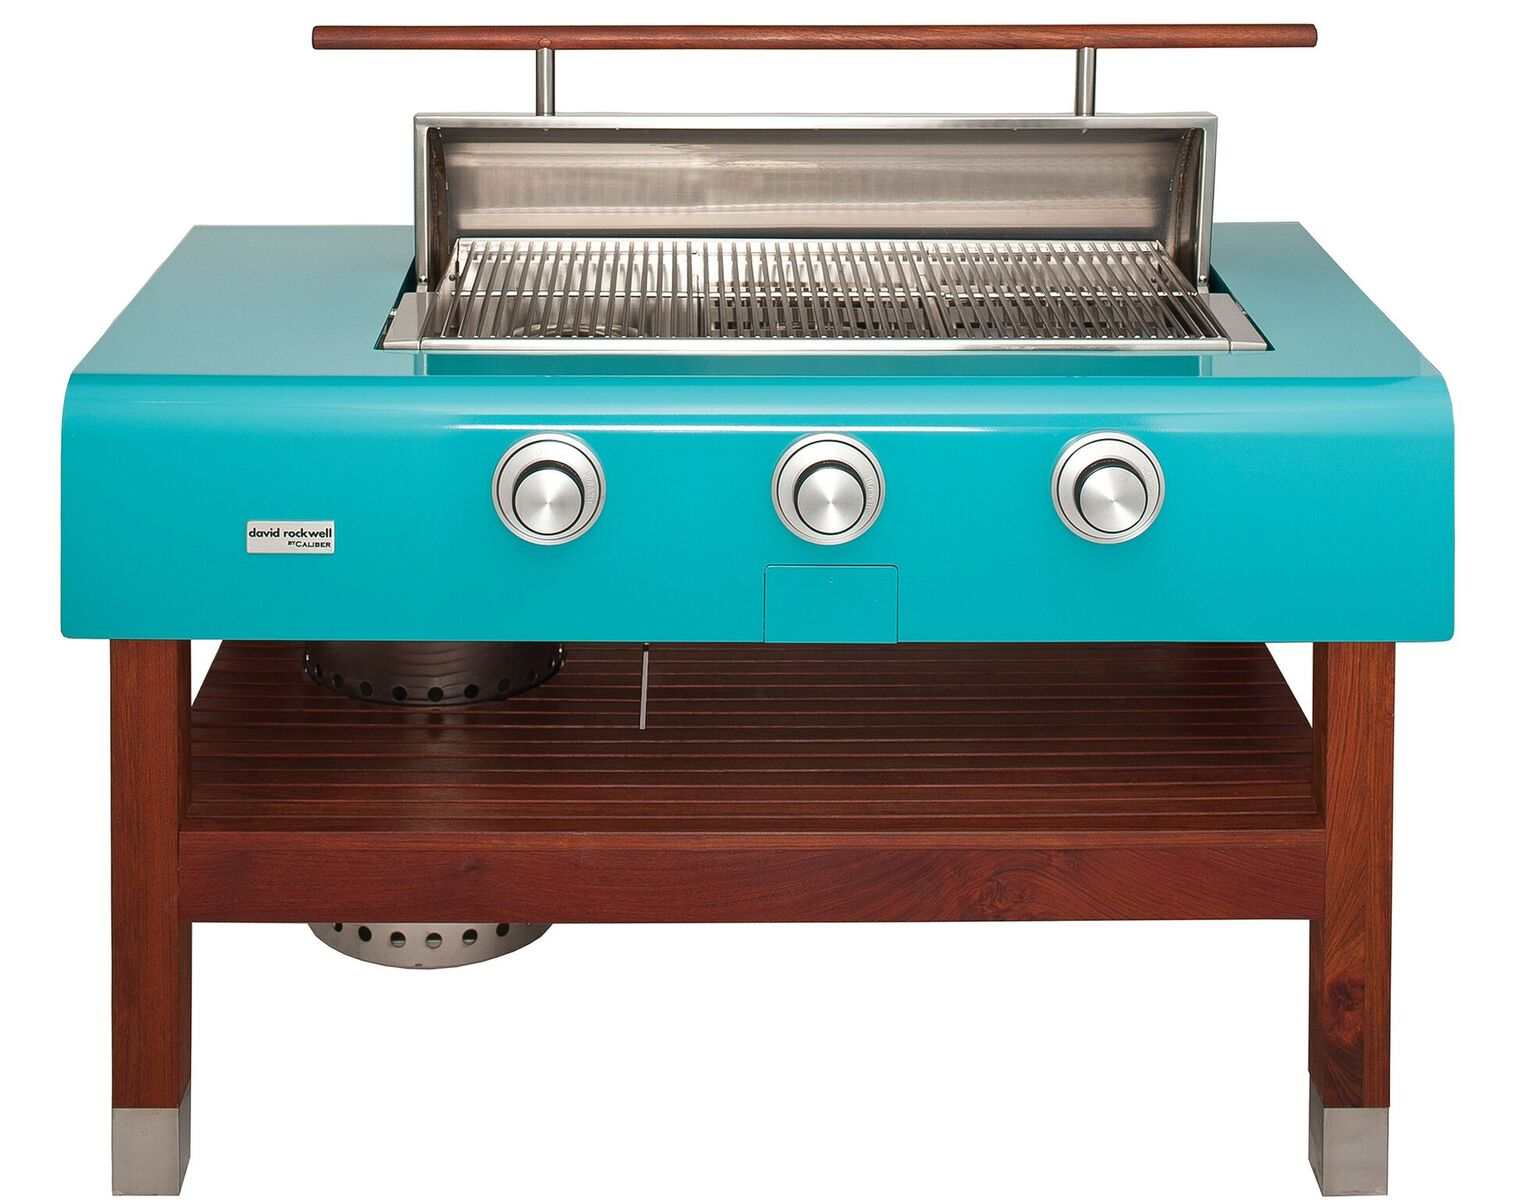 60″ Rockwell by Caliber Social Grill (freestanding wood stand)